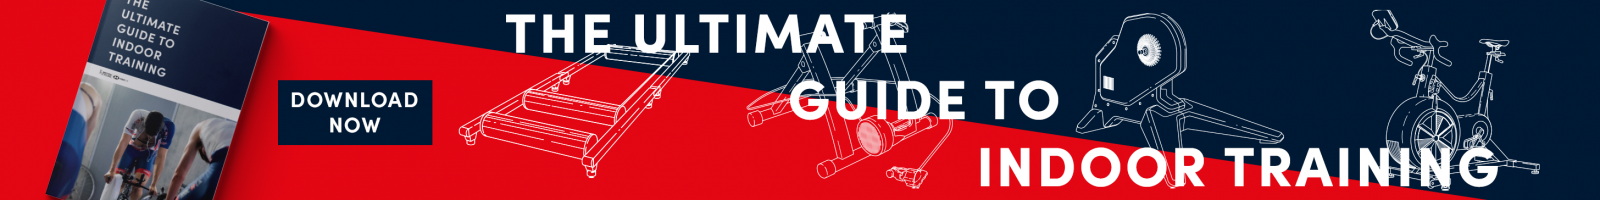 Ultimate Guide to Indoor Training eBook